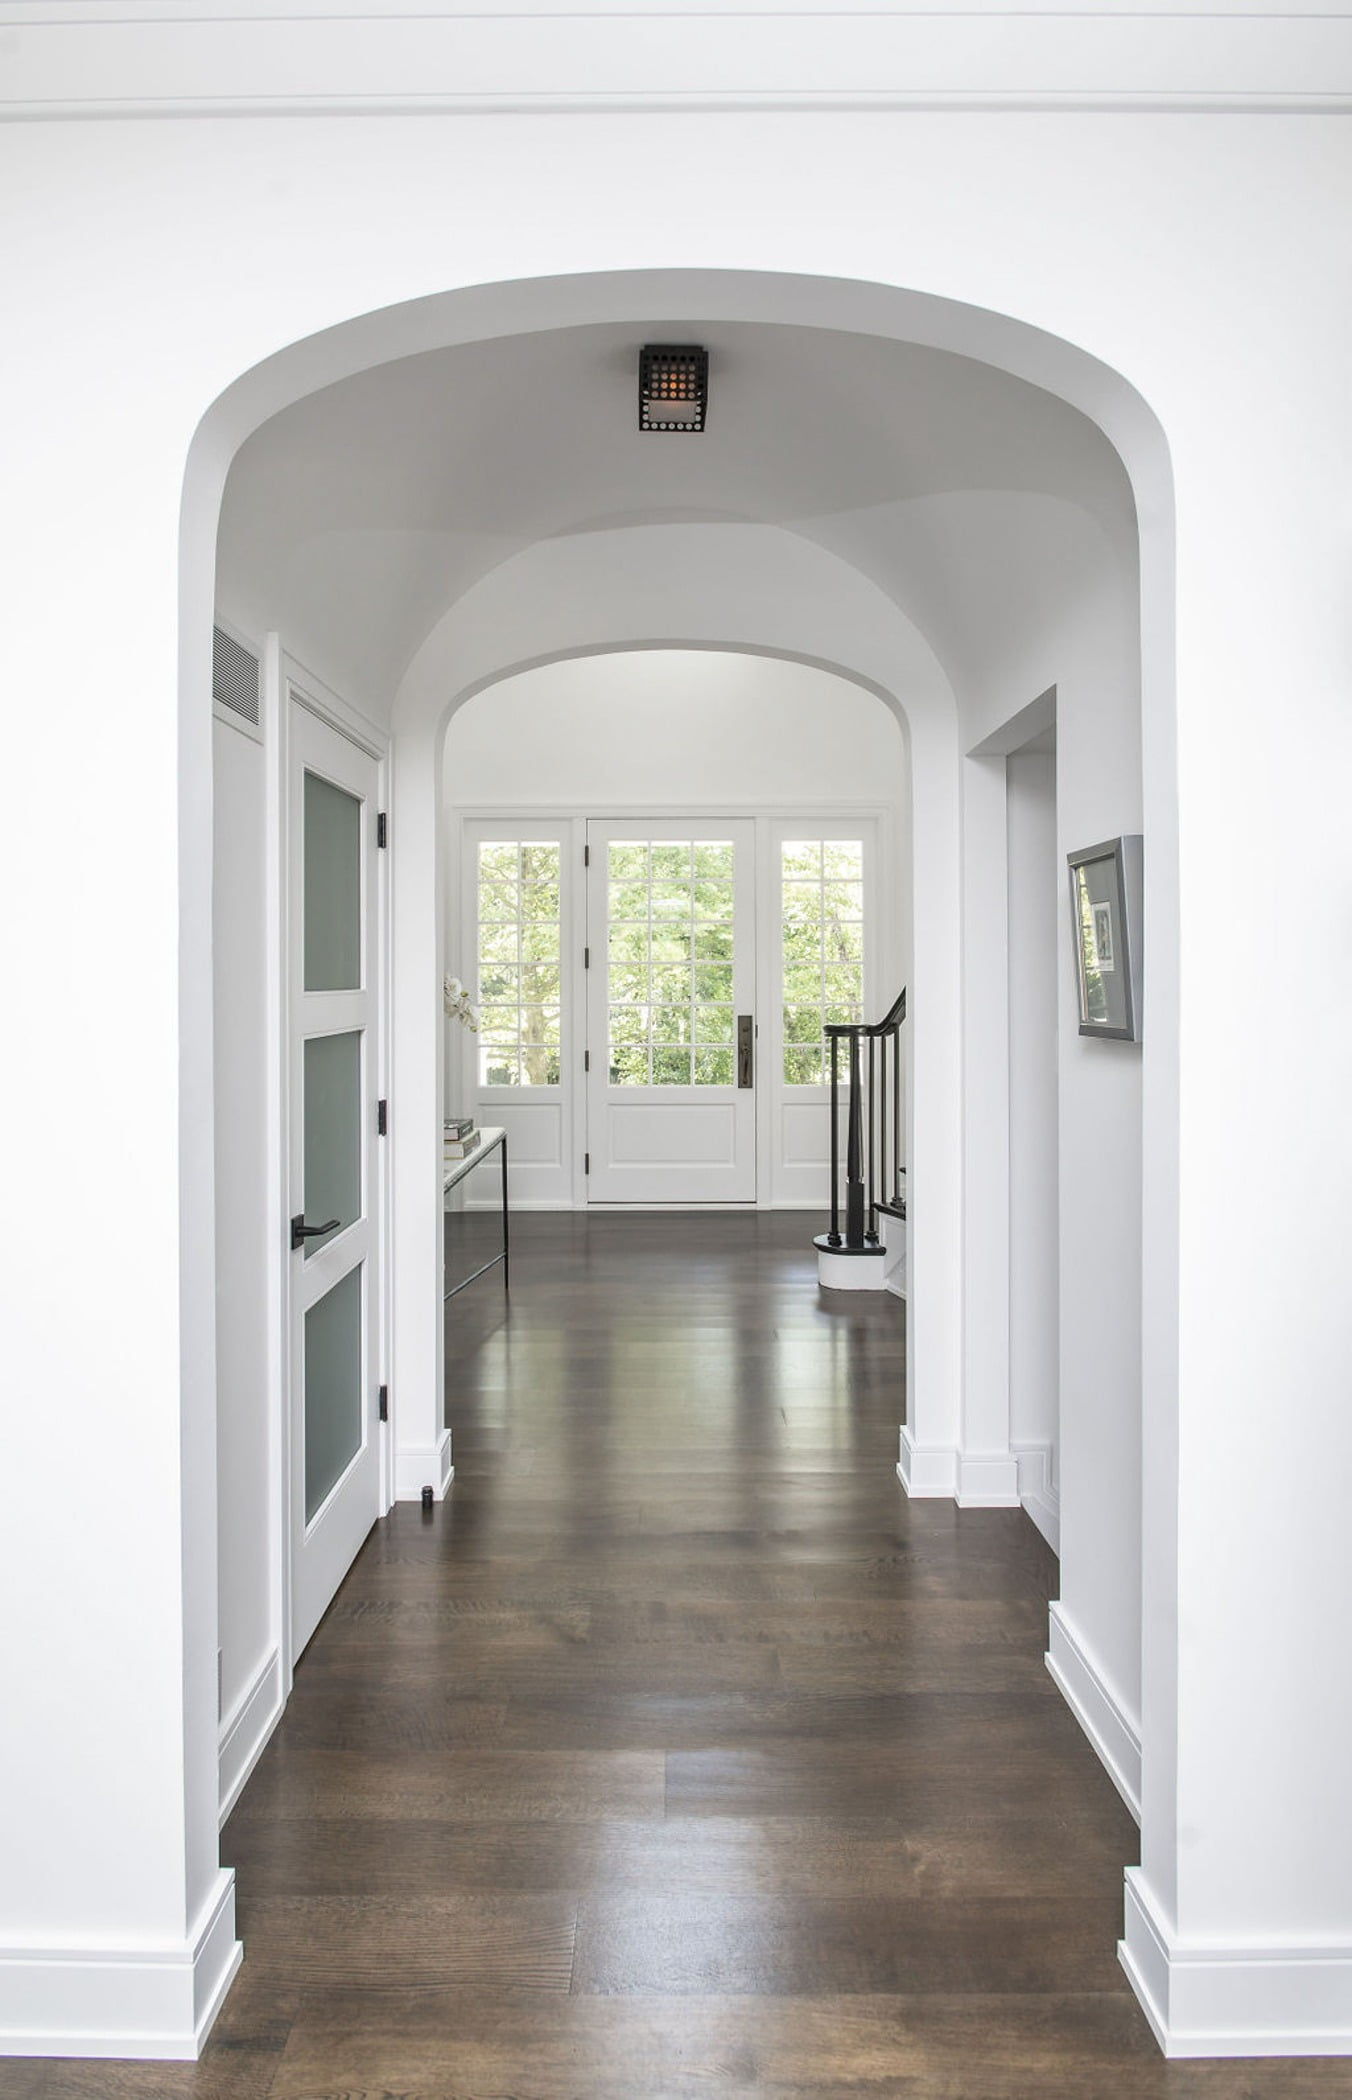 Transitional interior archway with dark hardwood flooring and clean white walls